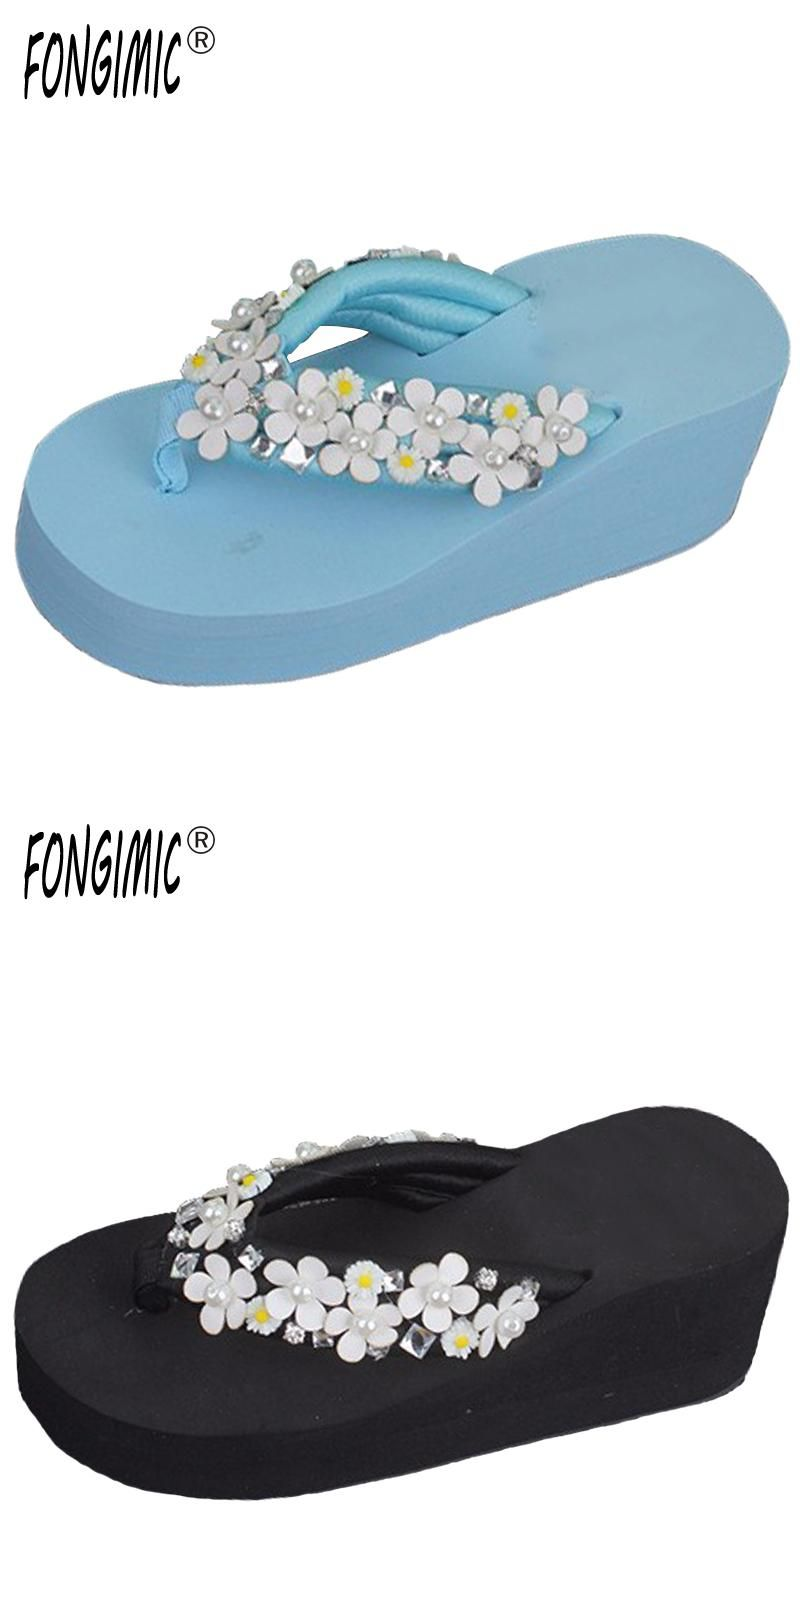 019cc3d285ab81 Fashion Bohemia Flowers Women Beach Summer Sweet All-match Slip- Resistant Slippers  Platform Wedges Sandal Flip Flops Shoes